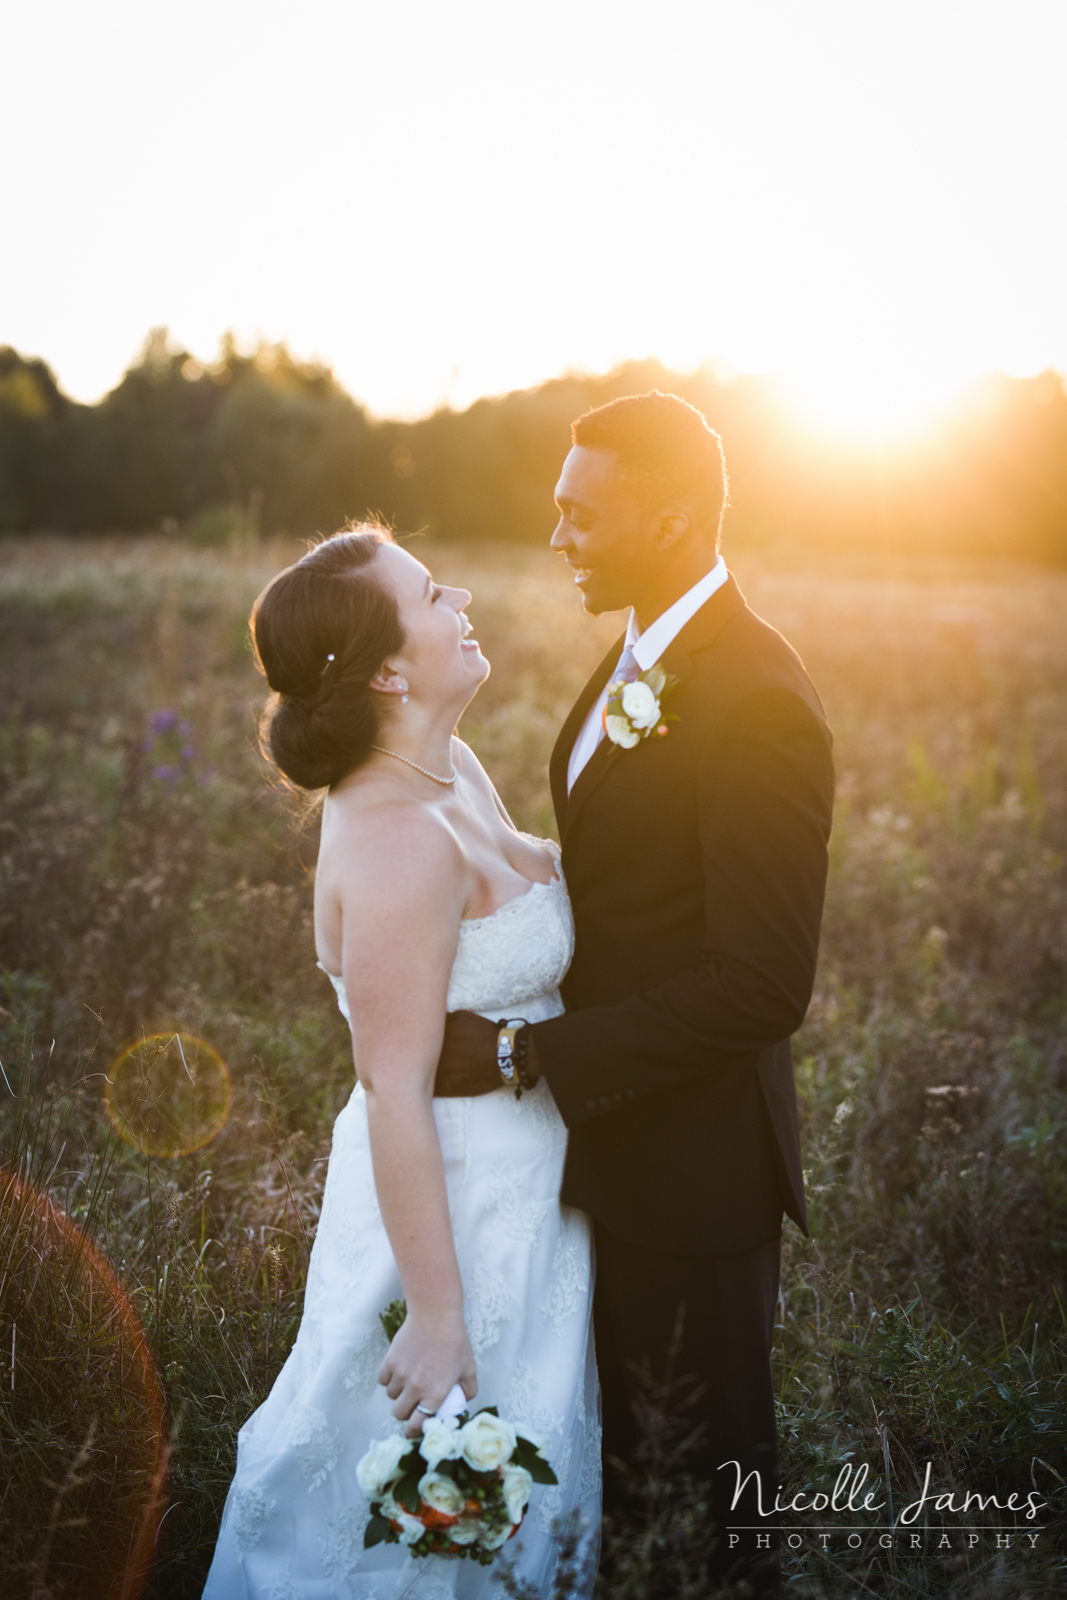 Nicolle-James-Photography-Wedding-Jeanba